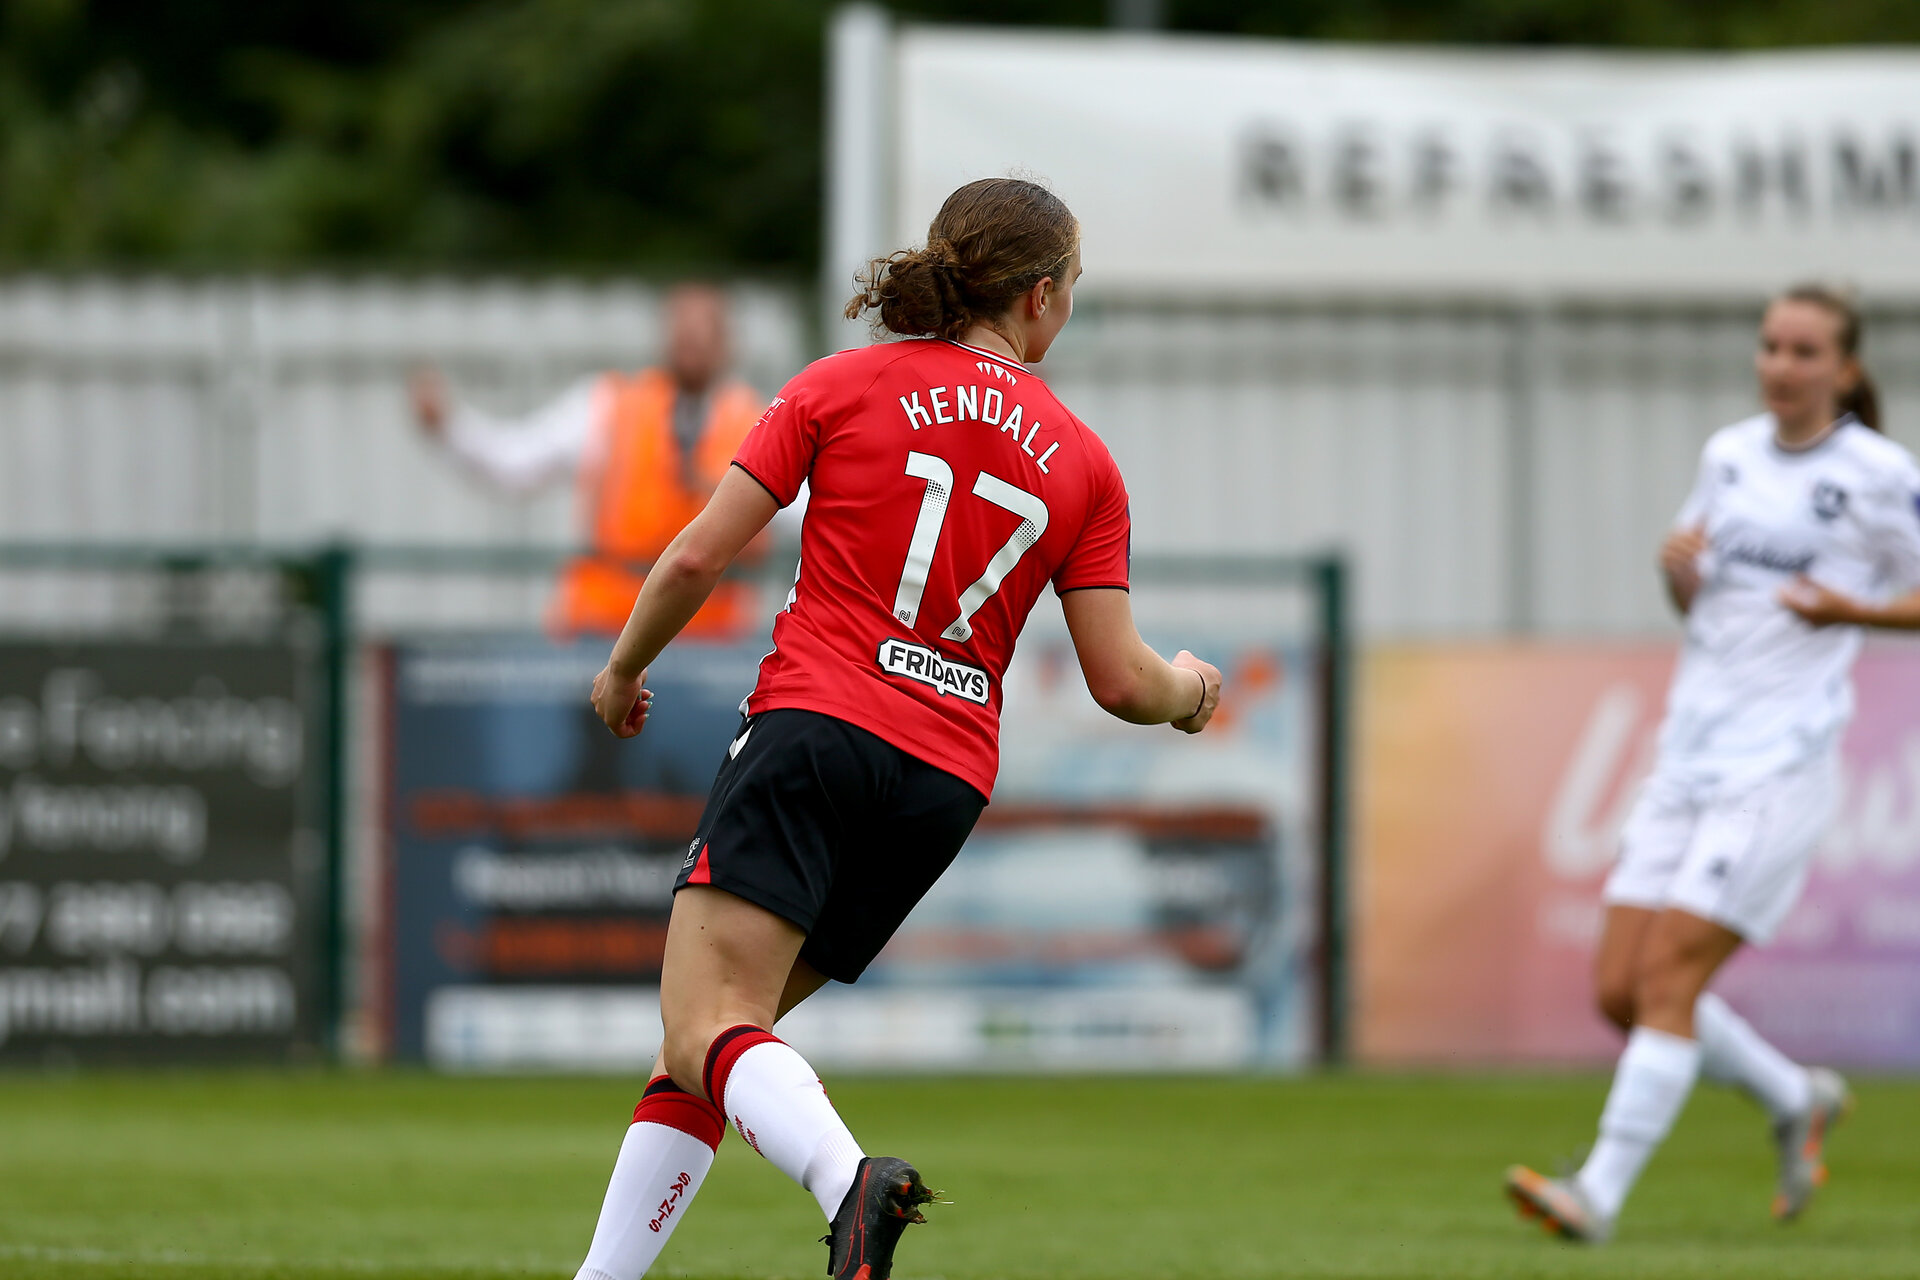 SOUTHAMPTON, ENGLAND - AUGUST 15:  during the FA Women's National League Southern Premier match between Southampton Women's and MK Dons Ladies at Snow's Stadium on August 15, 2021 in Southampton, England. (Photo by Isabelle Field/Southampton FC via Getty Images)